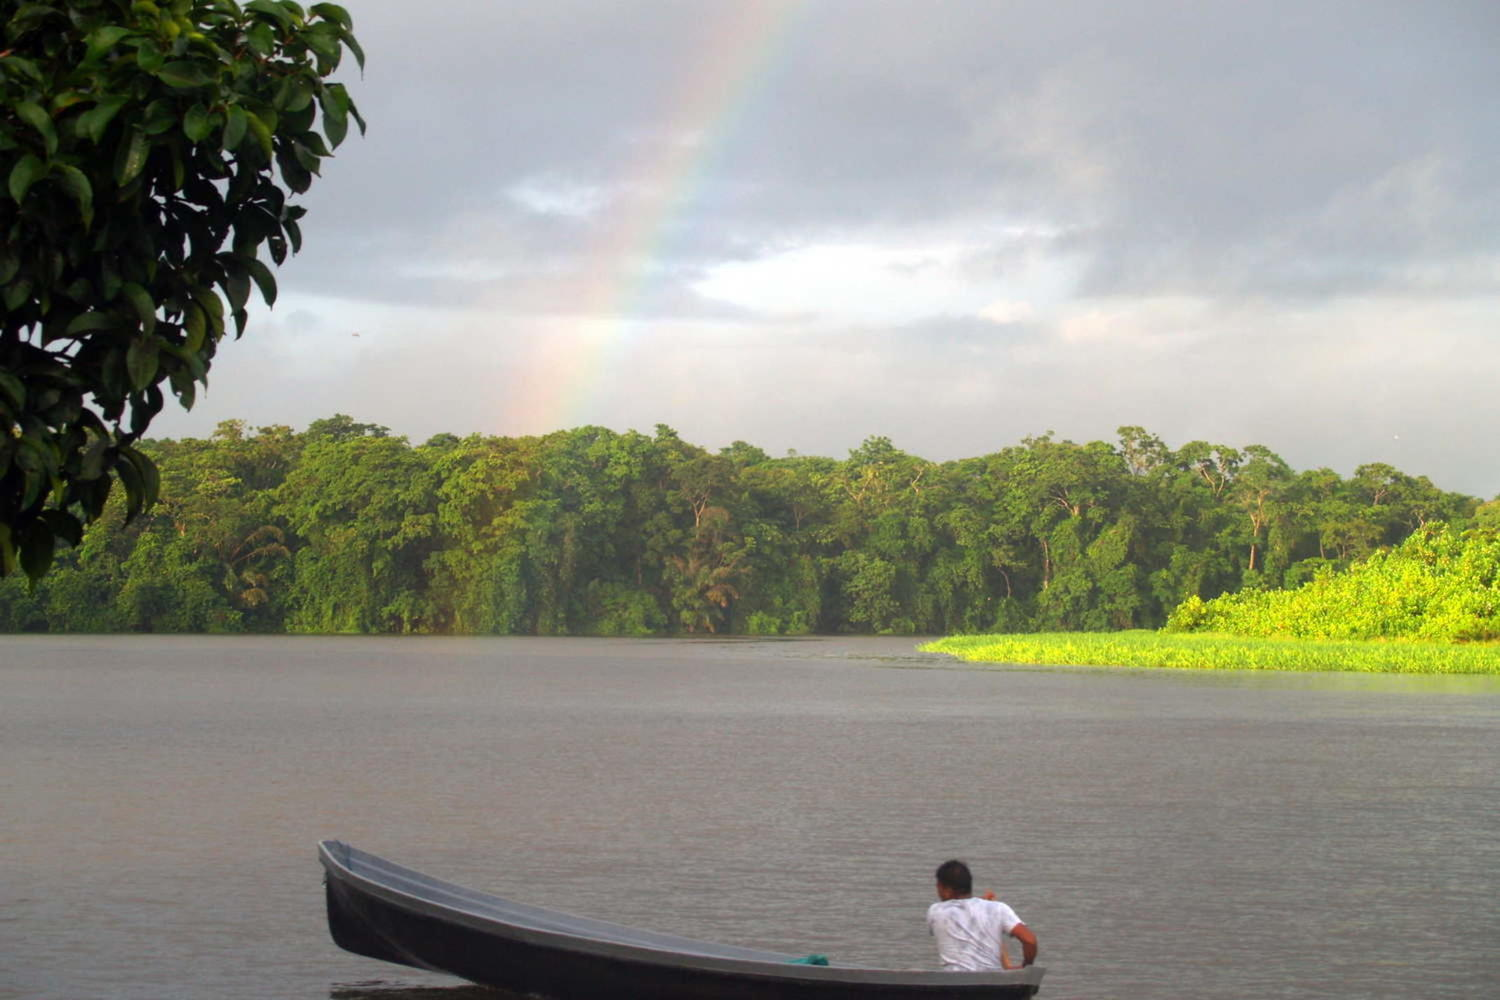 Looking south west along main channel from the public dock in Tortuguero